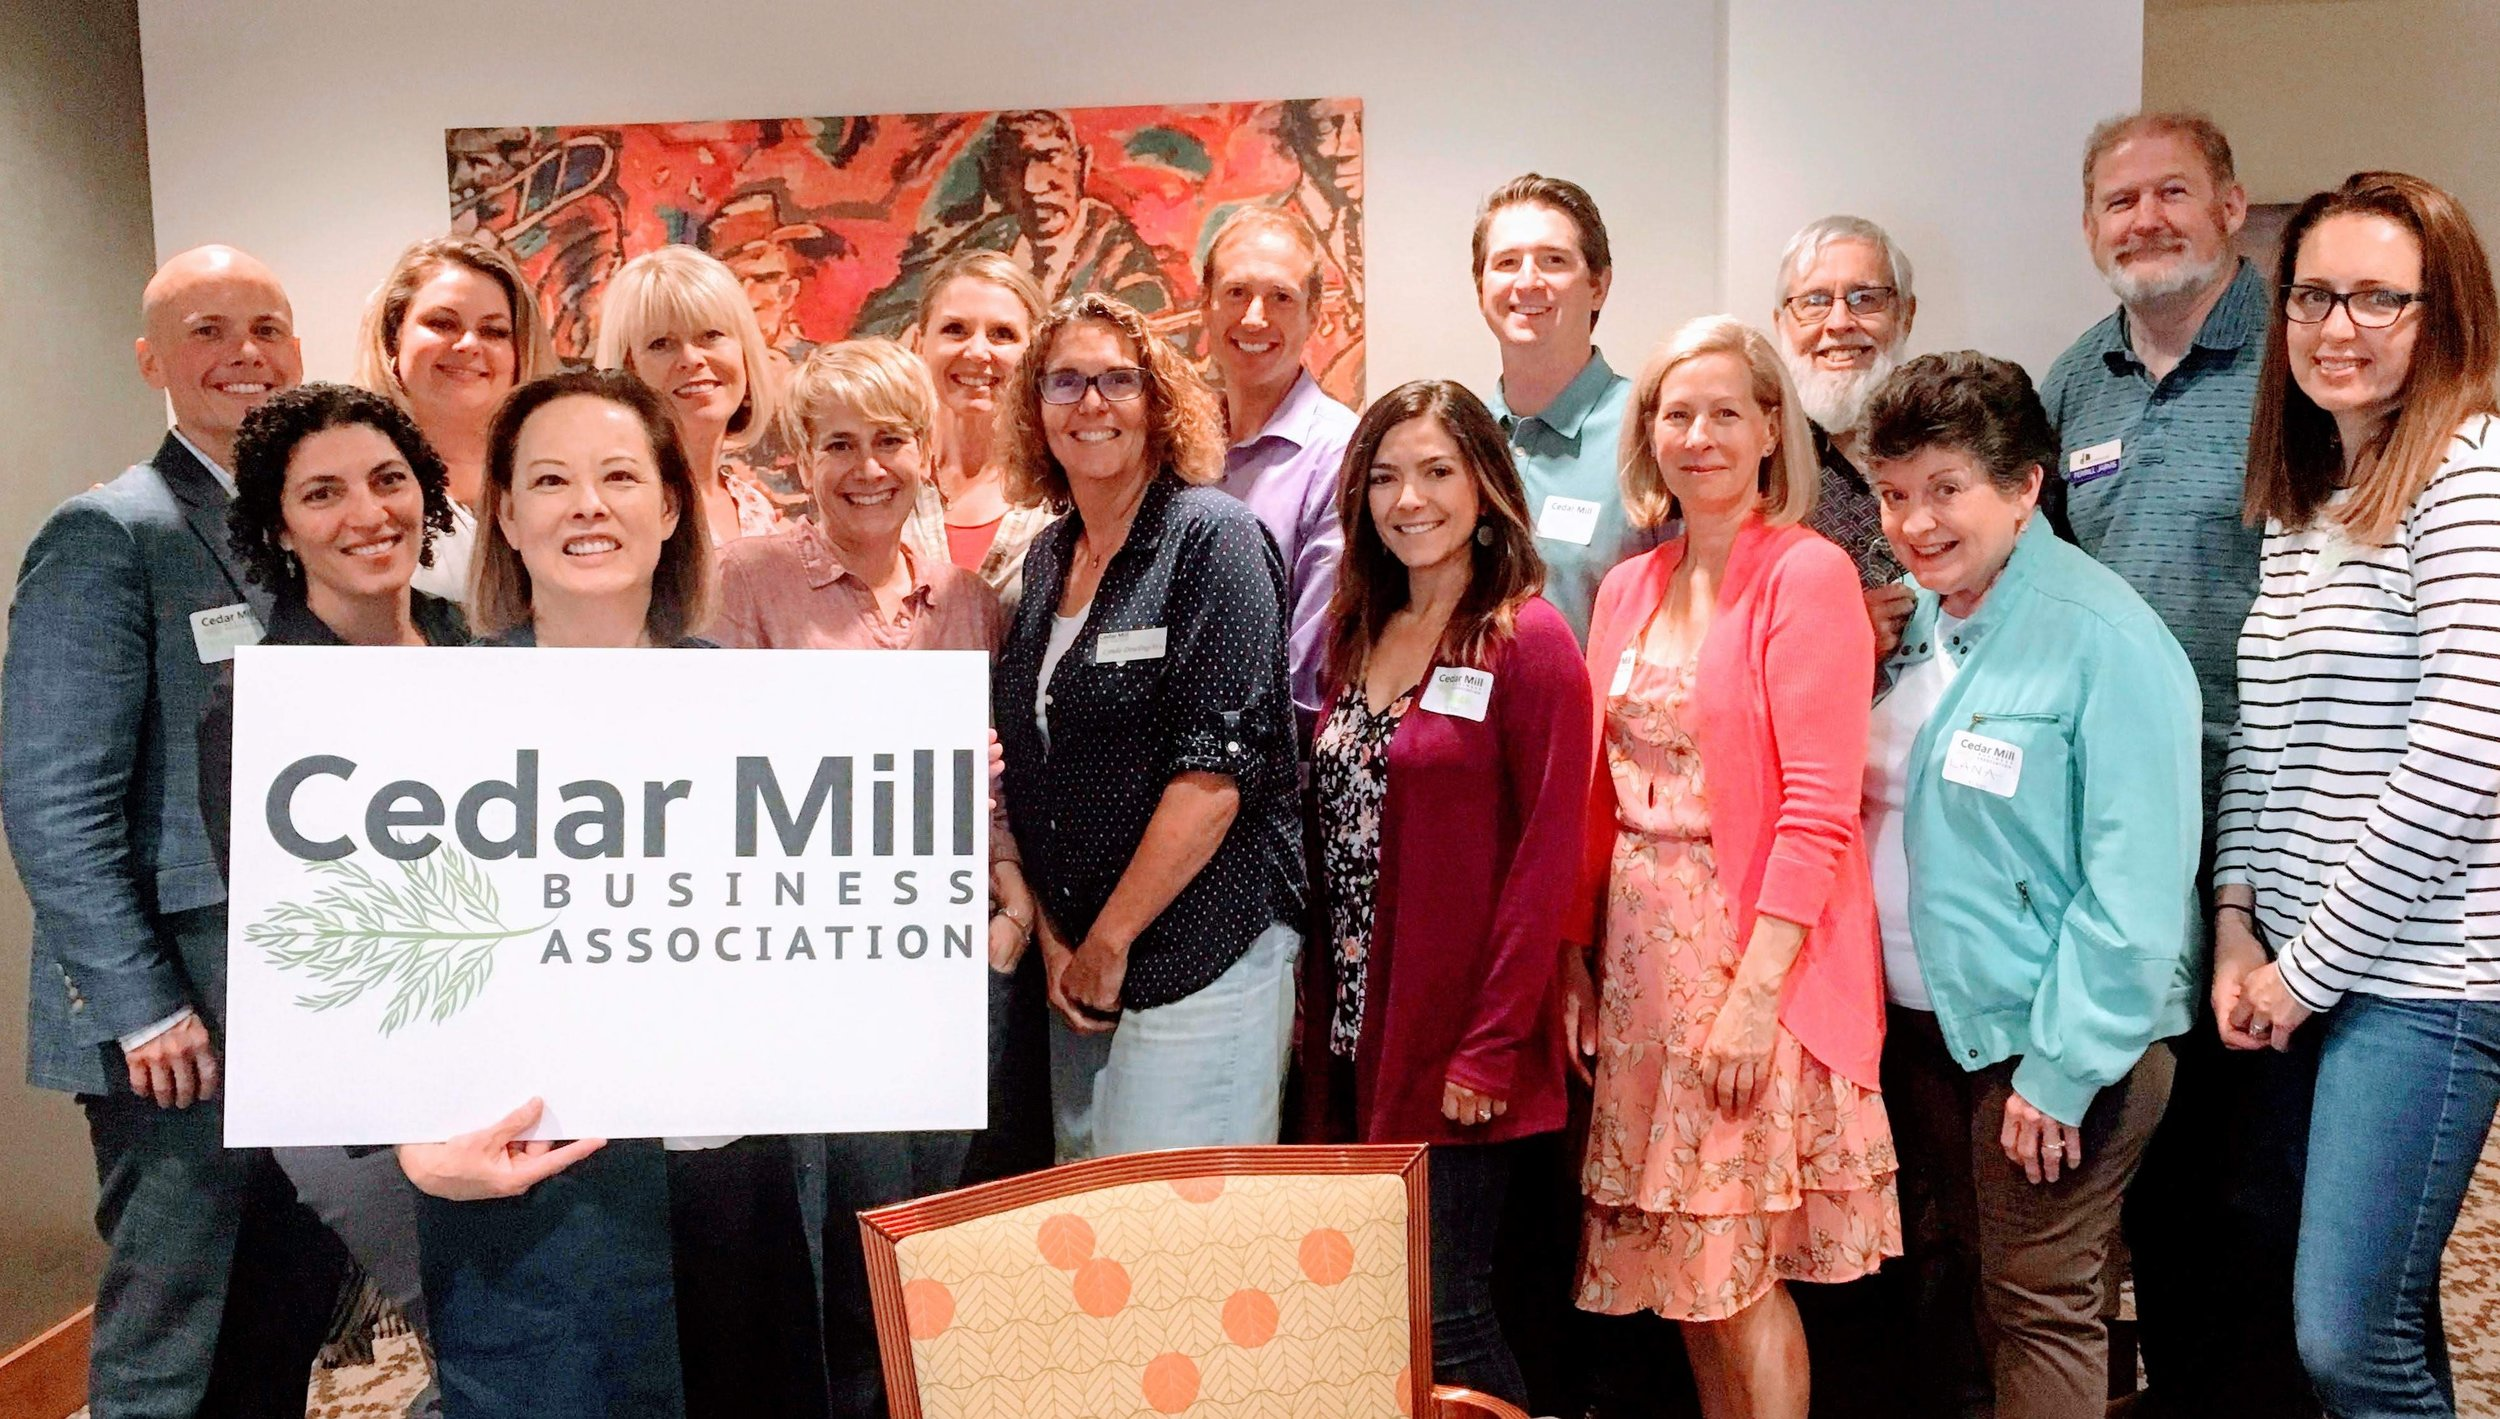 I joined the Cedar Mills Business Association 10 years ago and this is the current group of wonderful business people who support each other